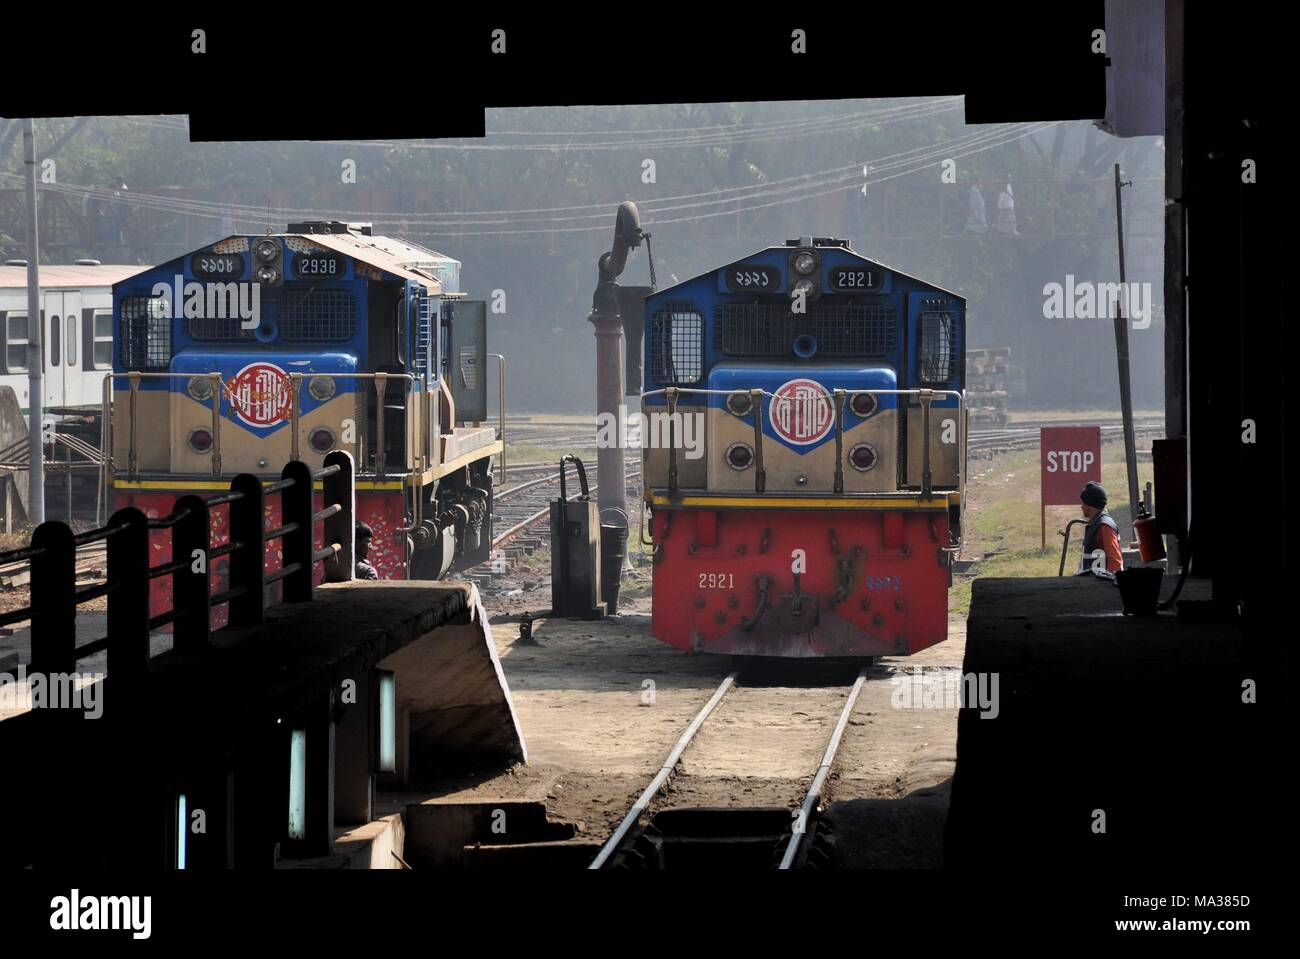 4052cc1ab642 Locomotive depot with loco 2938 and 2921 on 15.01.2015 in Chittagong -  Bangladesh